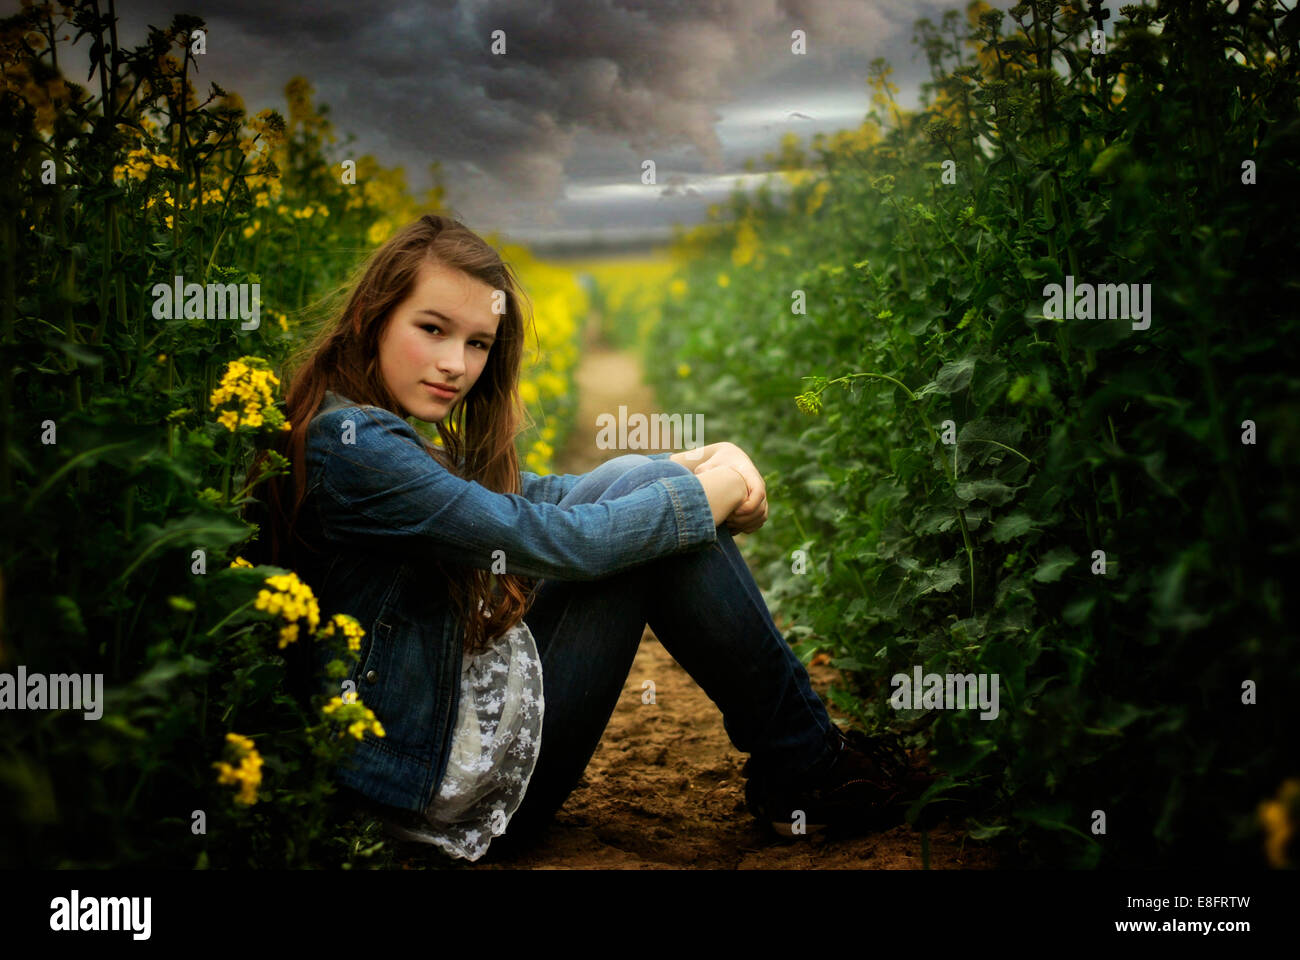 Side view of girl sitting in field - Stock Image